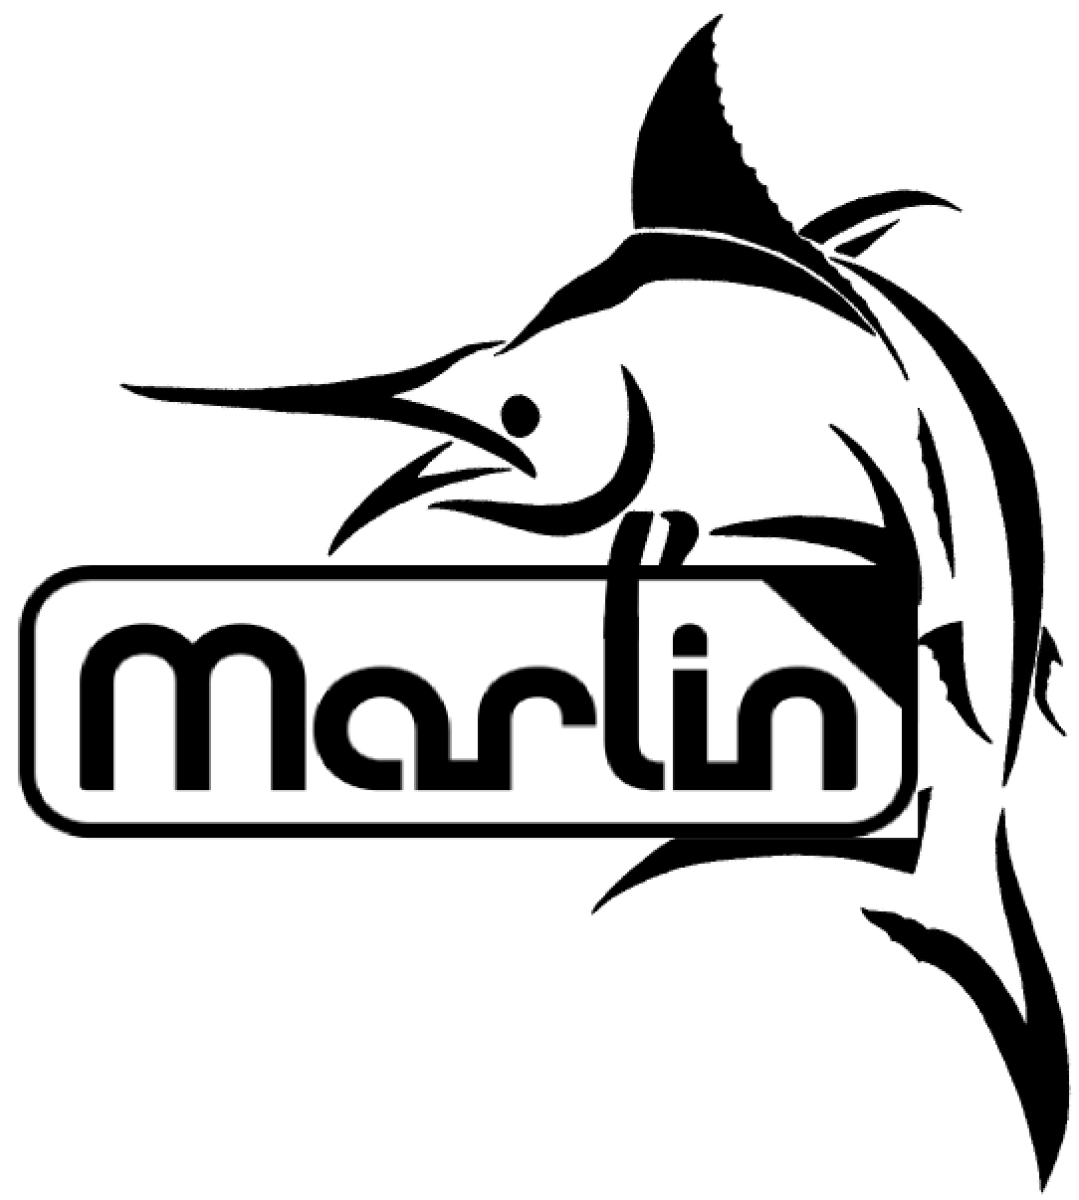 3D Printing And Marlin | Look At What We Have Done